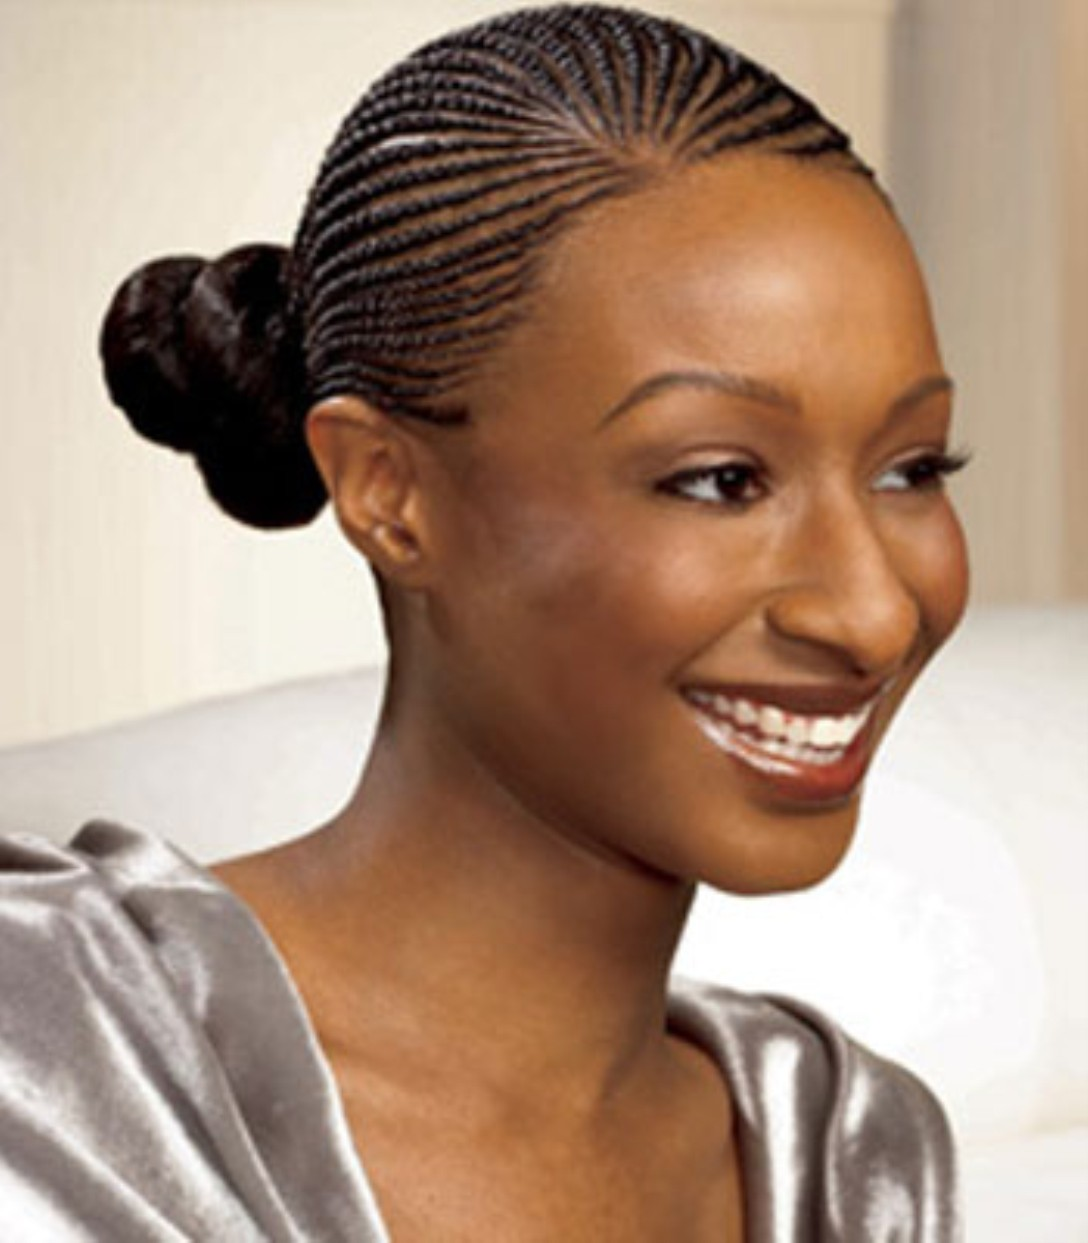 Black African Hair Braids Styles Hairstyles Gallery